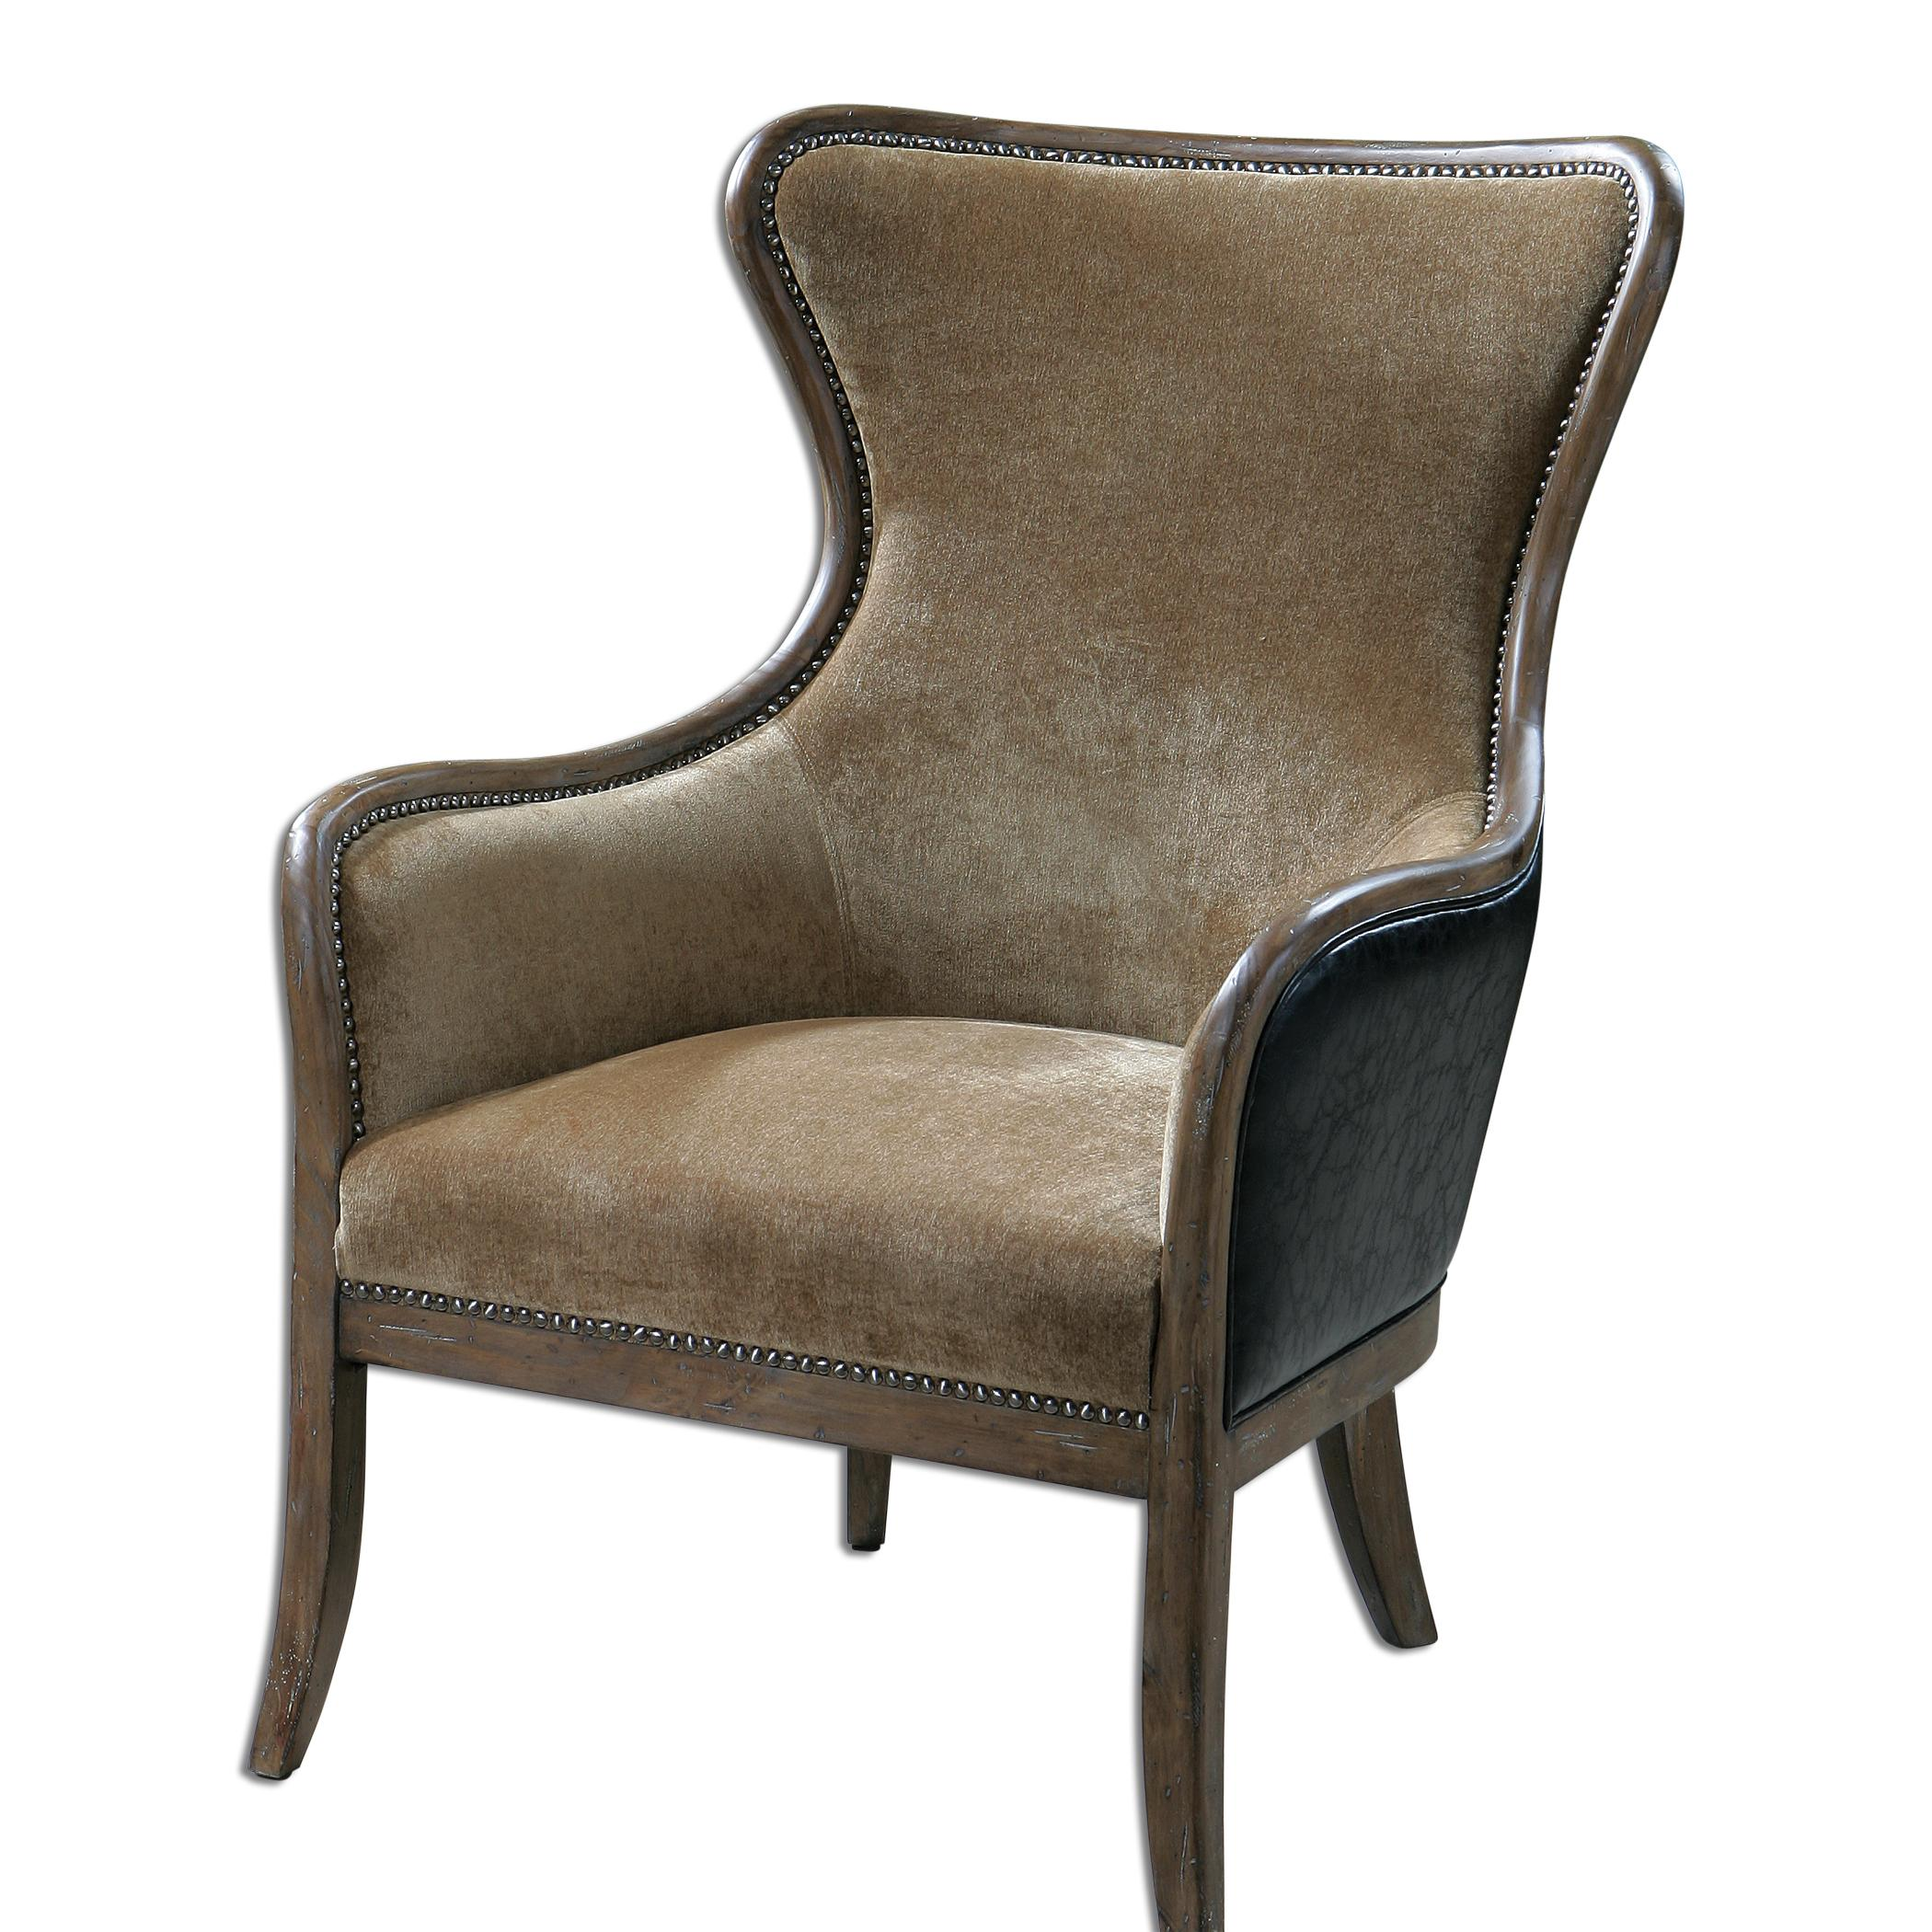 Accent Furniture - Accent Chairs Snowden Tan Wing Chair by Uttermost at Furniture Superstore - Rochester, MN